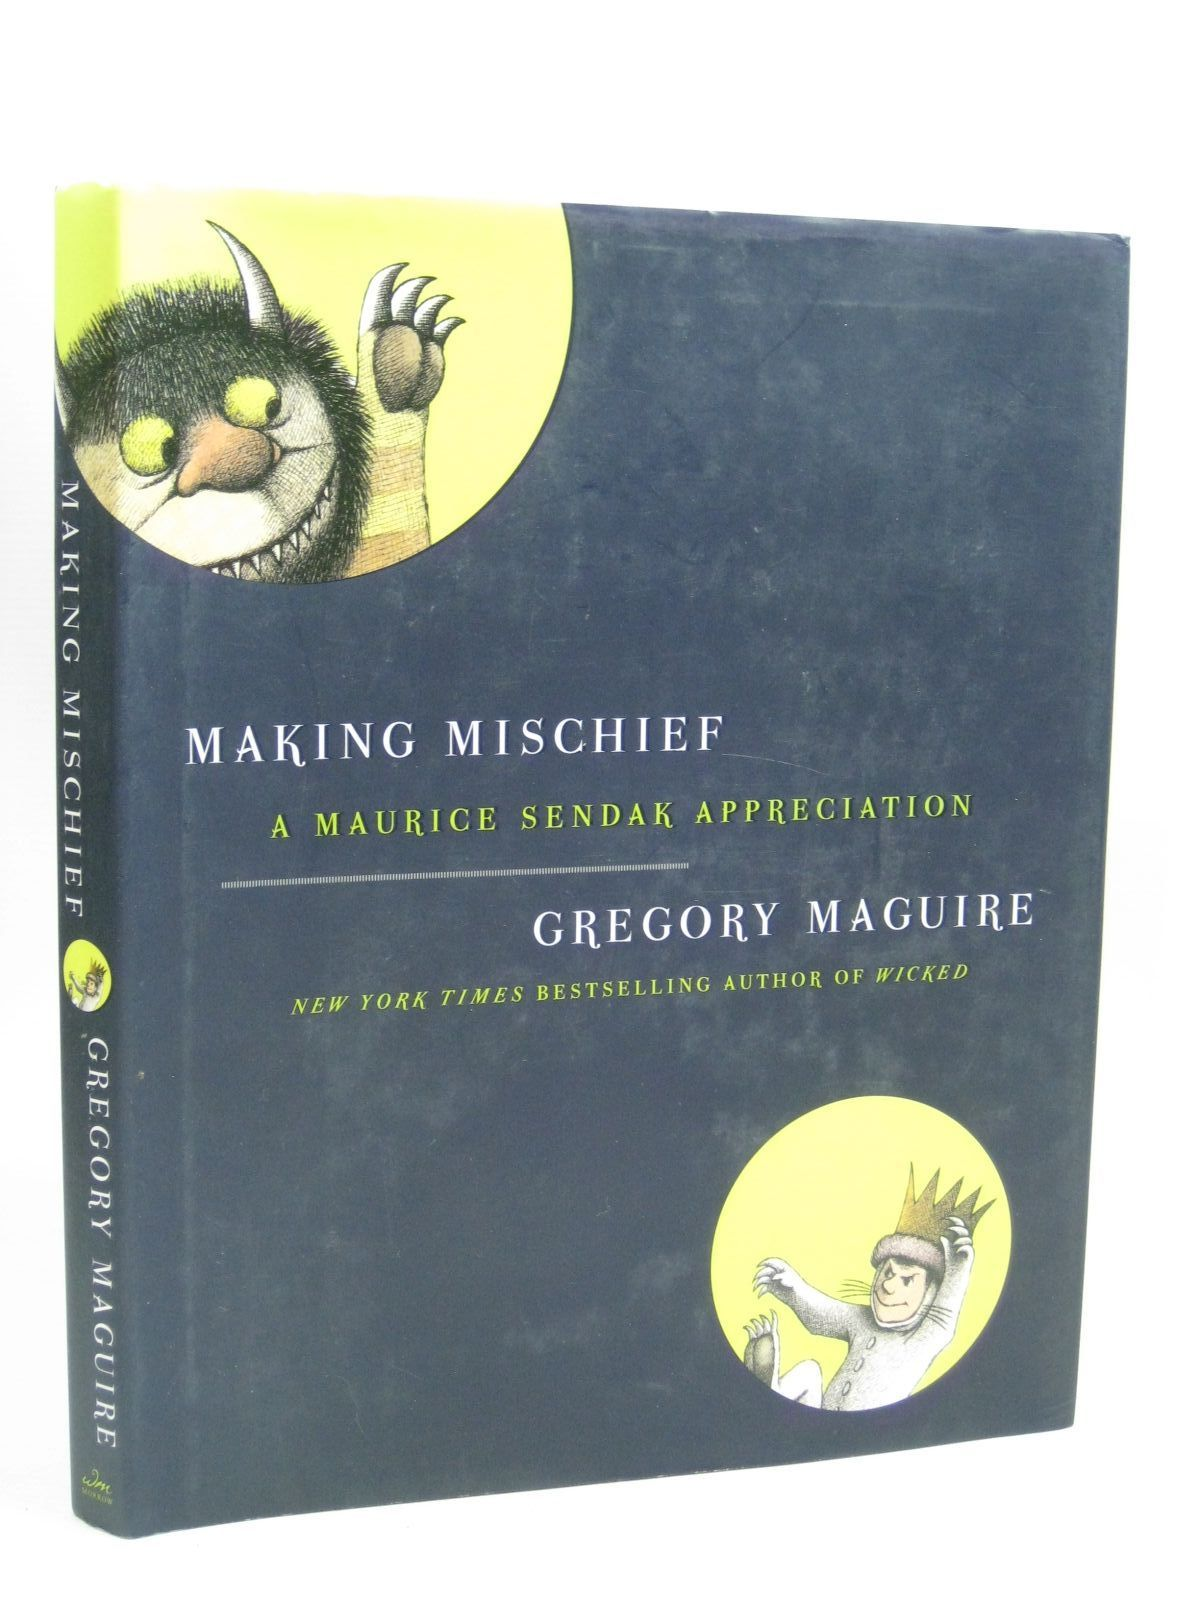 Photo of MAKING MISCHIEF A MAURICE SENDAK APPRECIATION written by Maguire, Gregory illustrated by Sendak, Maurice published by William Morrow (STOCK CODE: 1506292)  for sale by Stella & Rose's Books